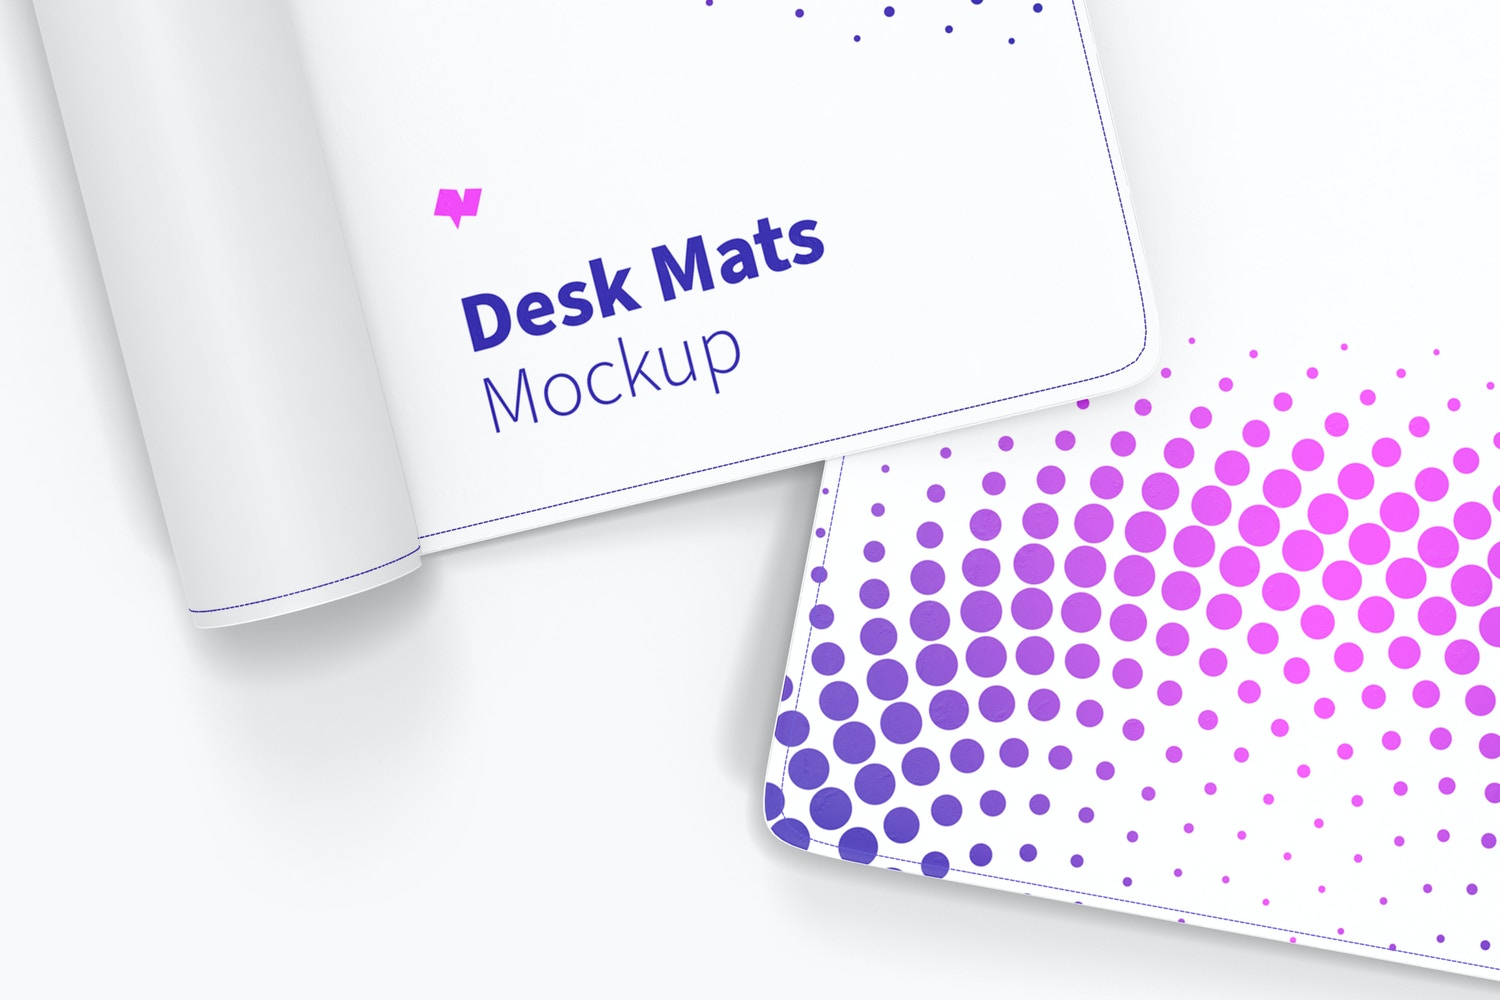 Desk Mats Mockup, Rolled-Up and Open